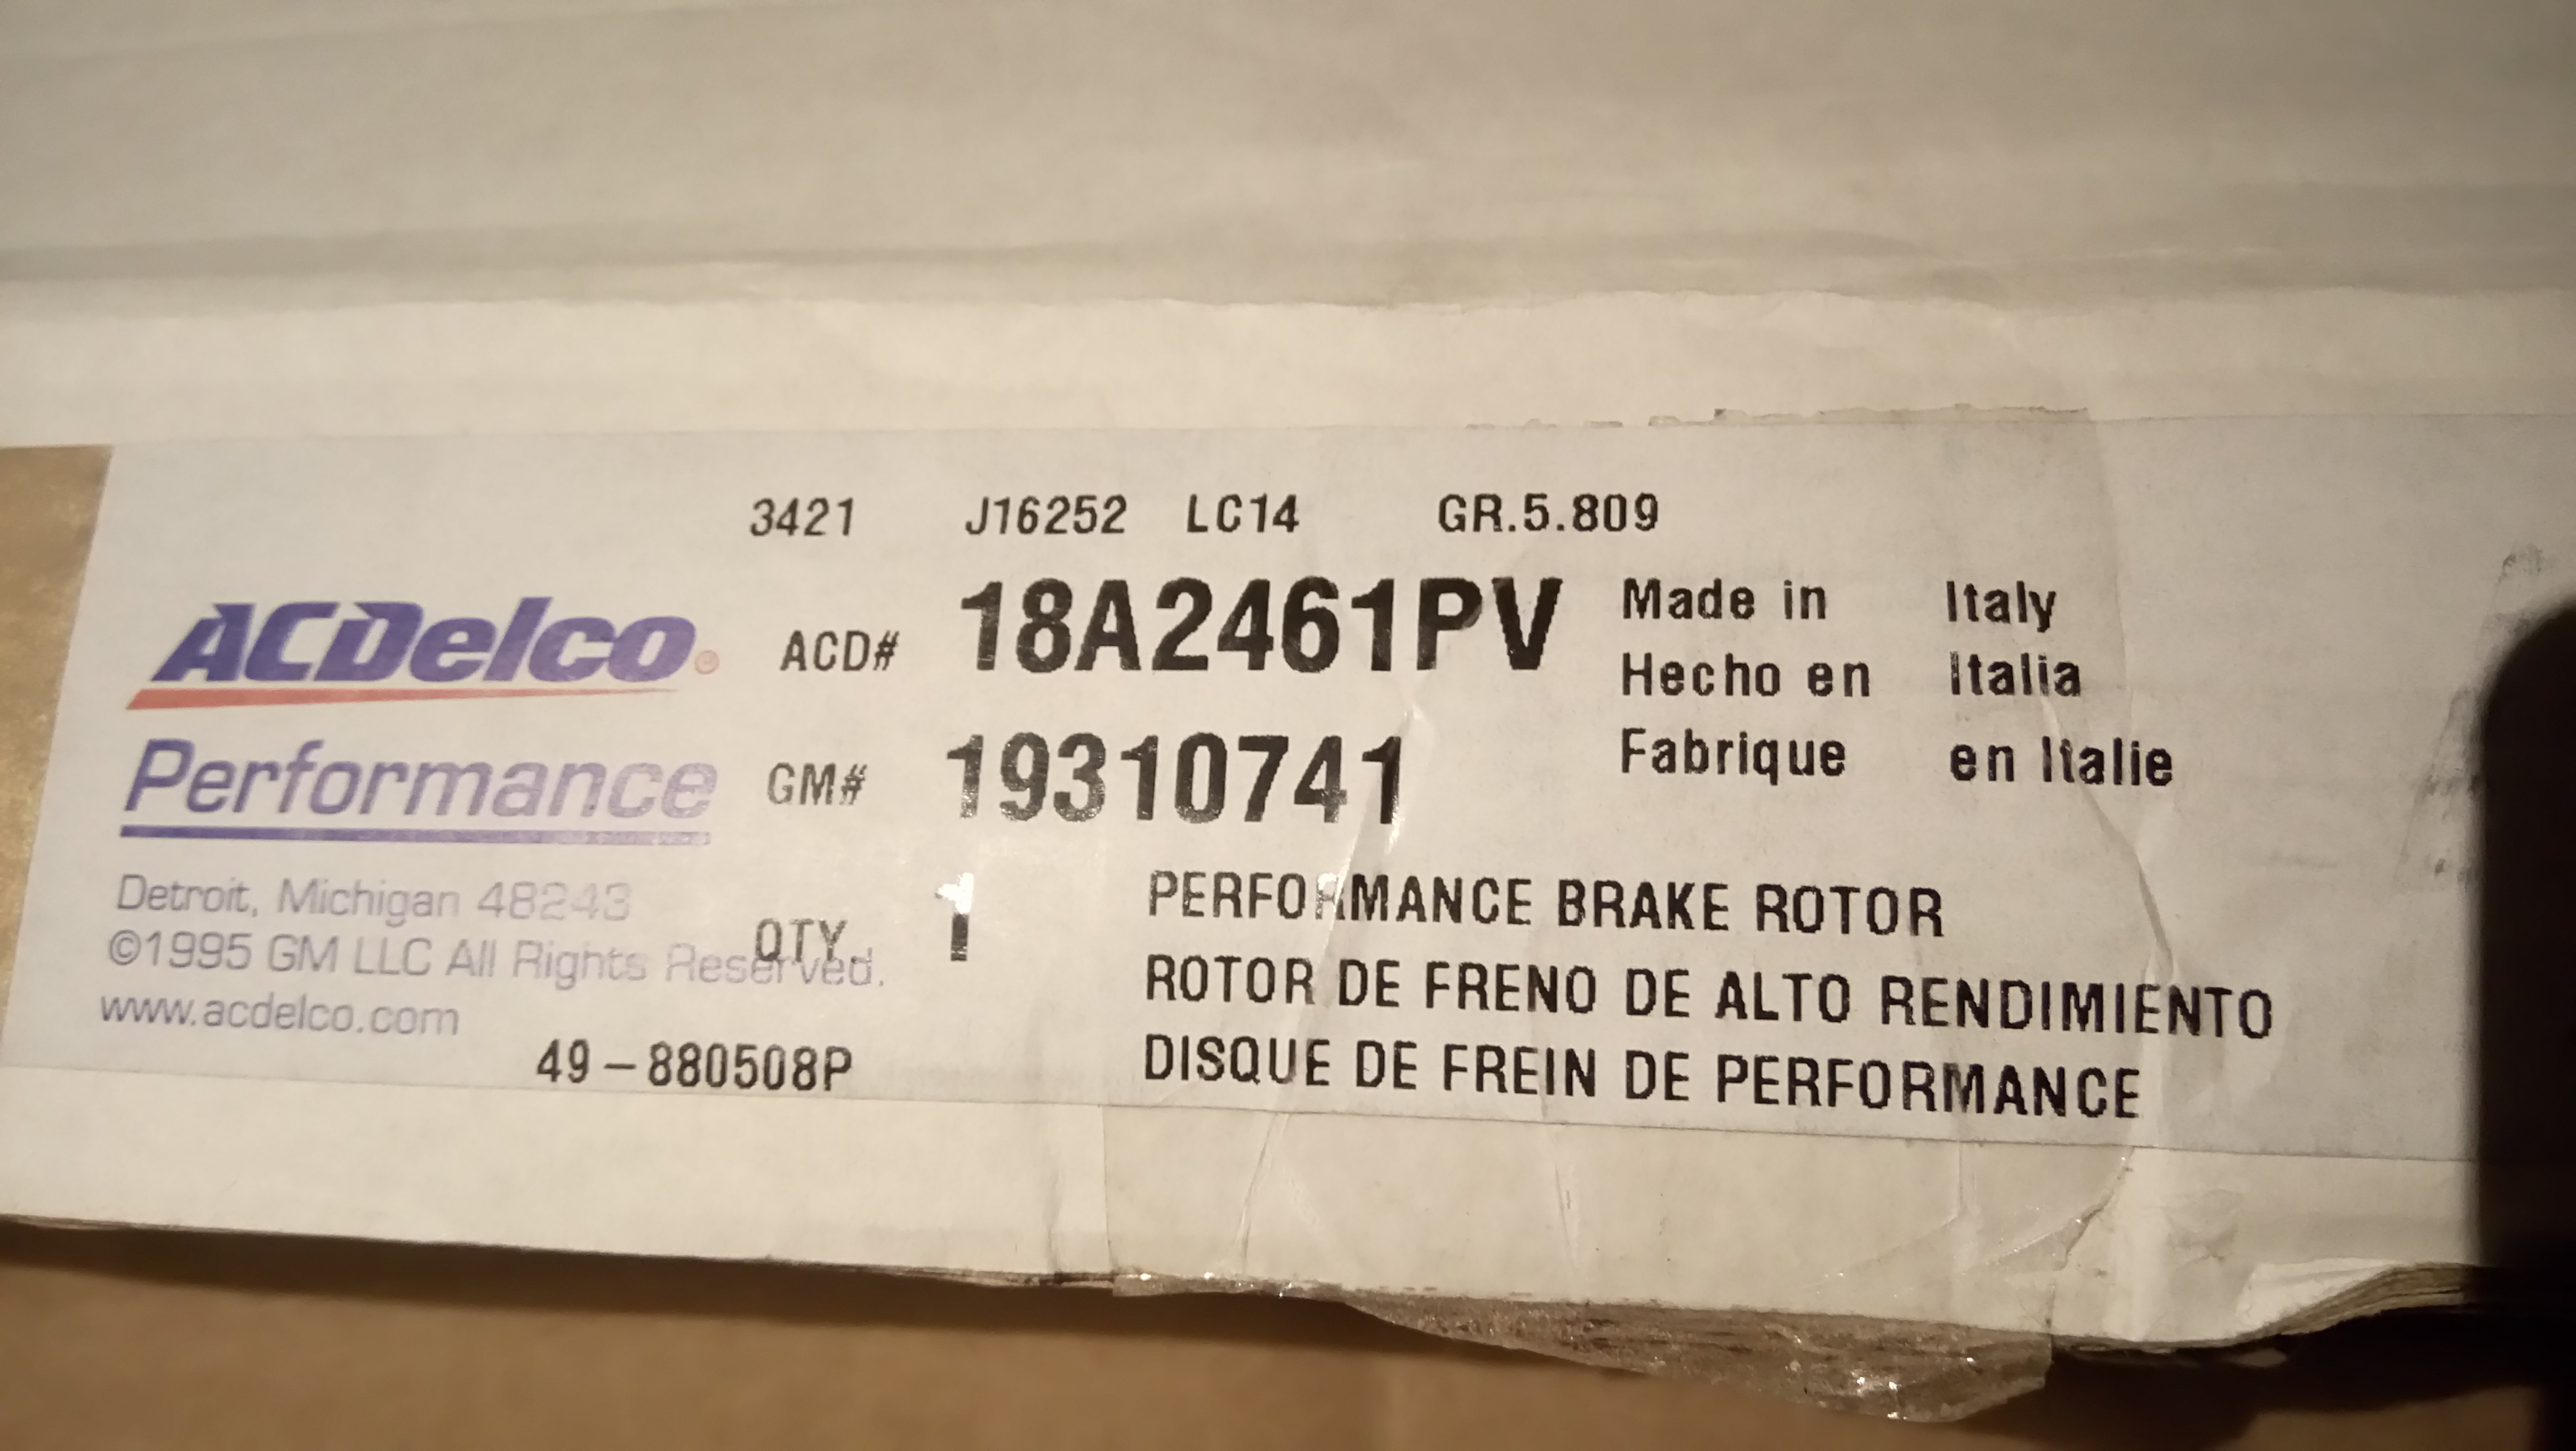 Not all rotors are made in China